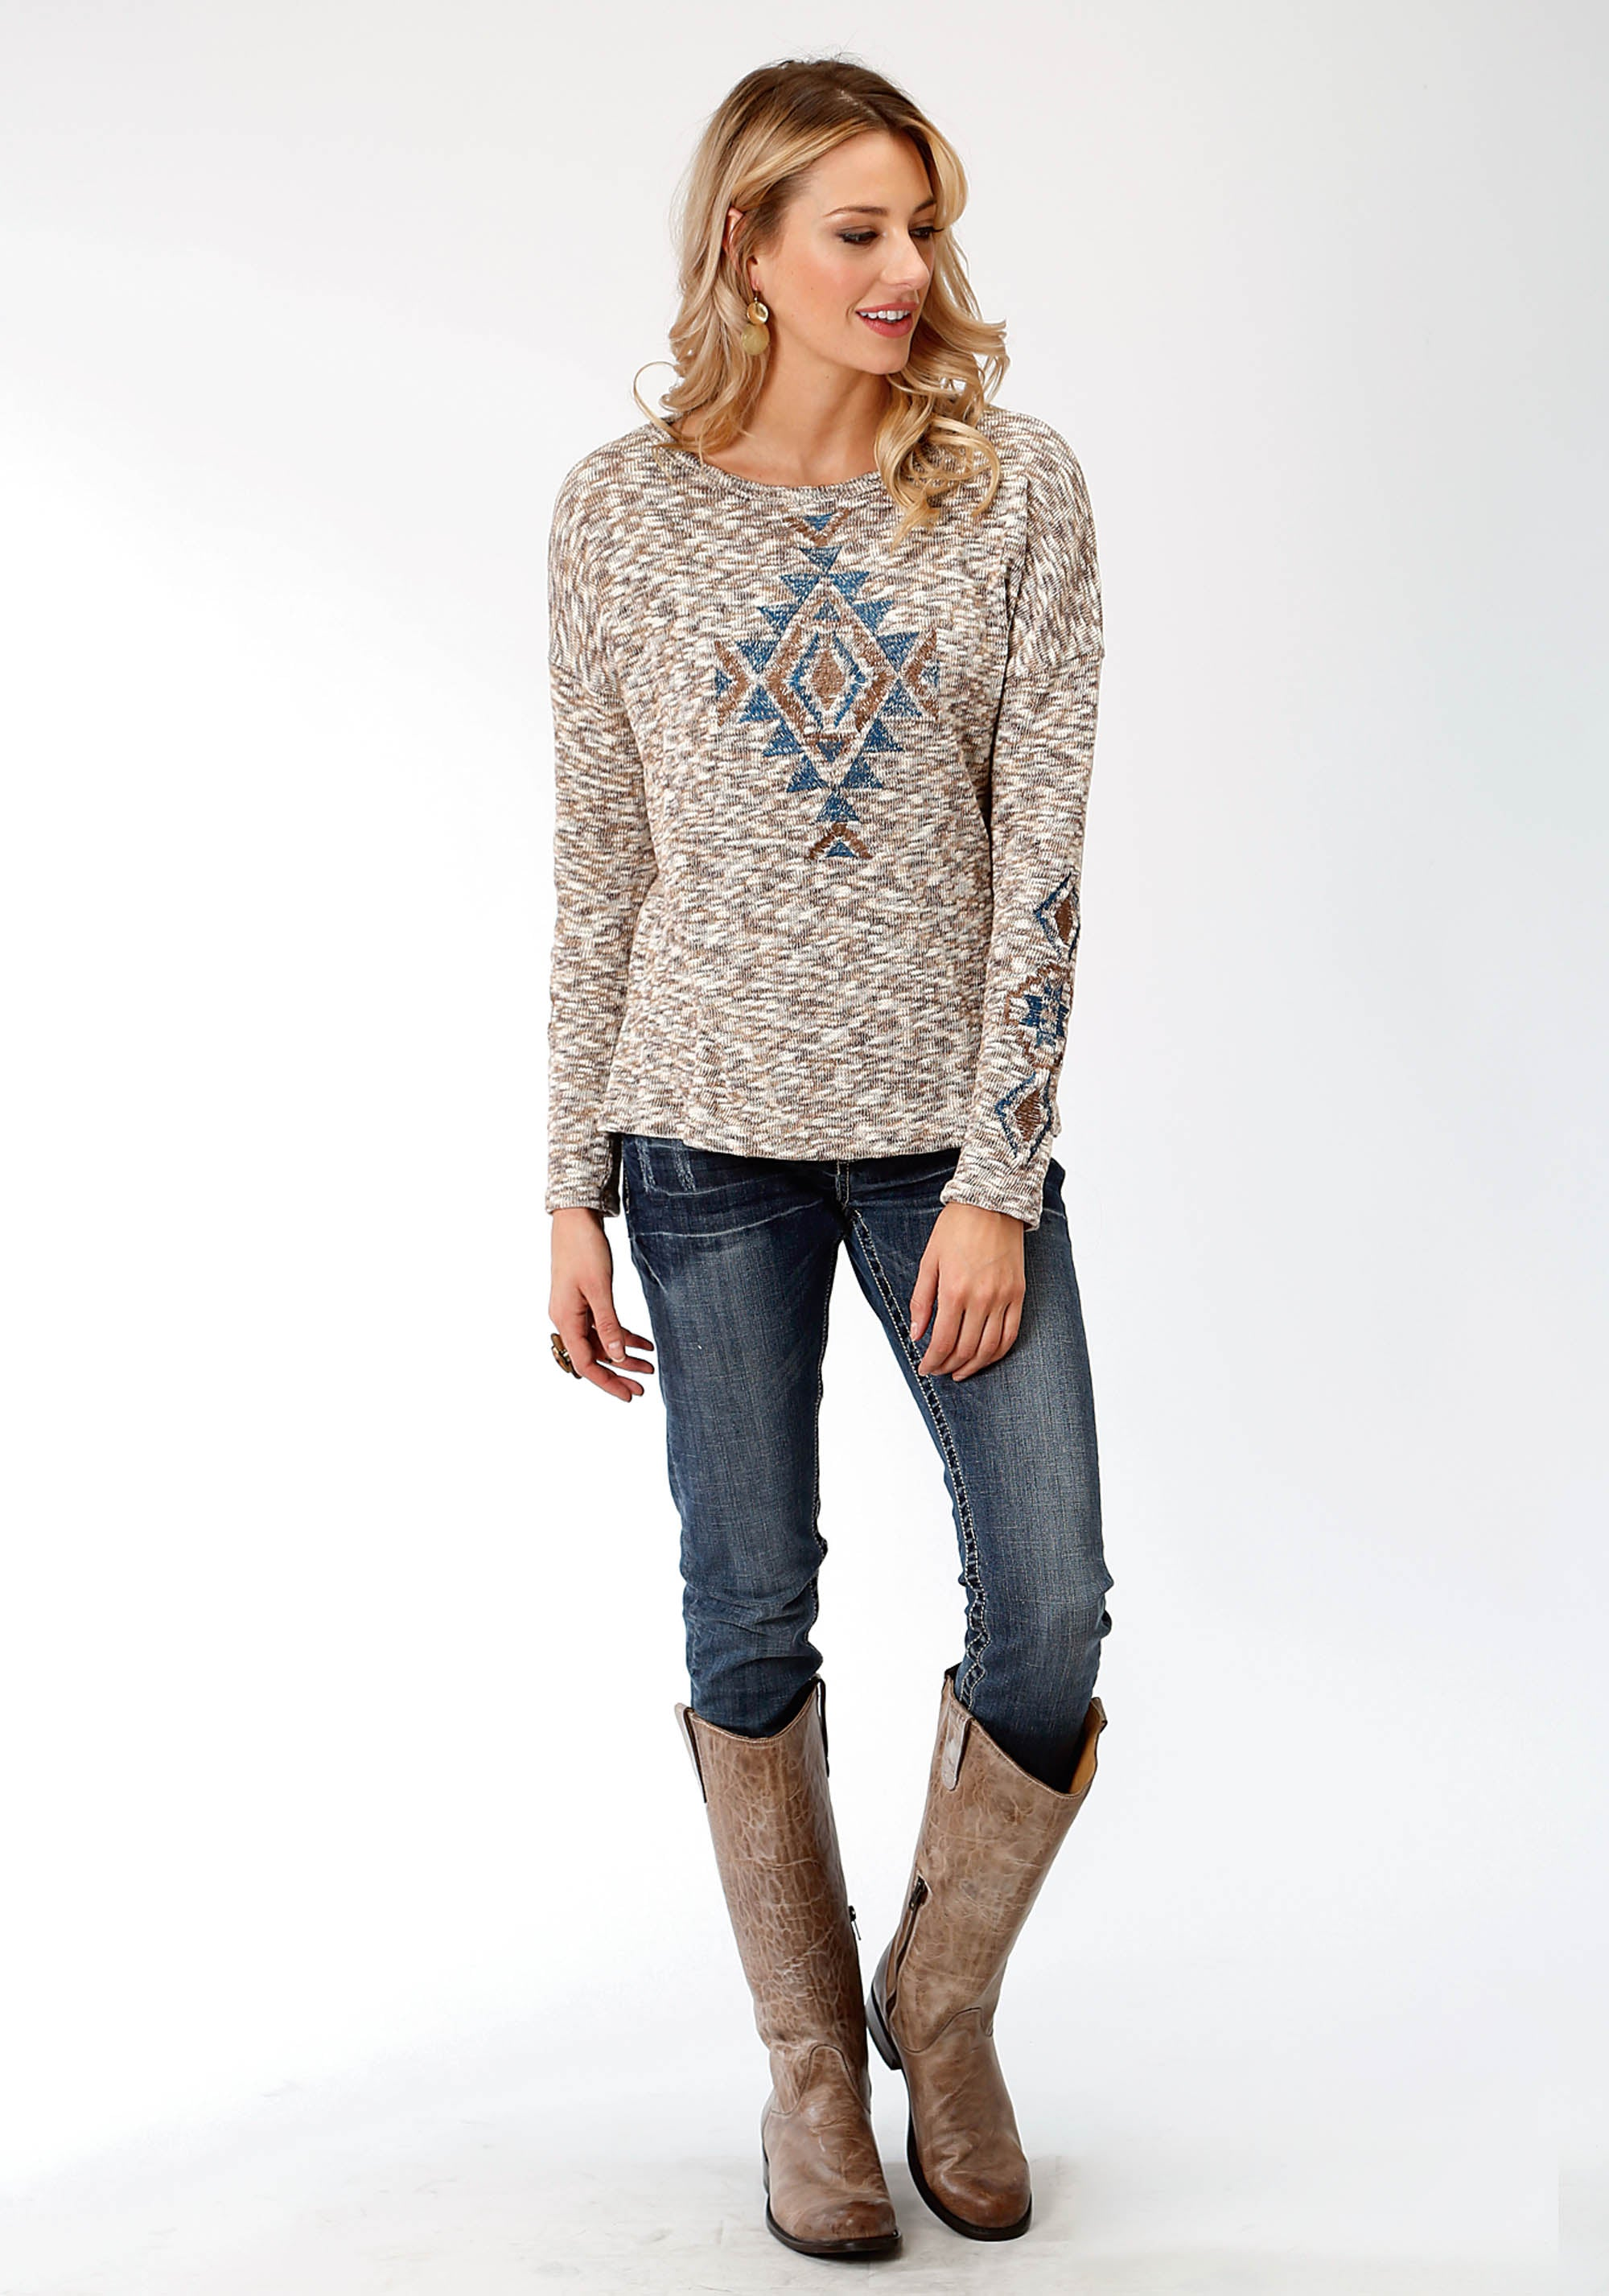 ROPER WOMENS BROWN 9488 MARLED YARN SWEATER STUDIO WEST COLLECTION- AUTUMN MEADOW LONG SLEEVE